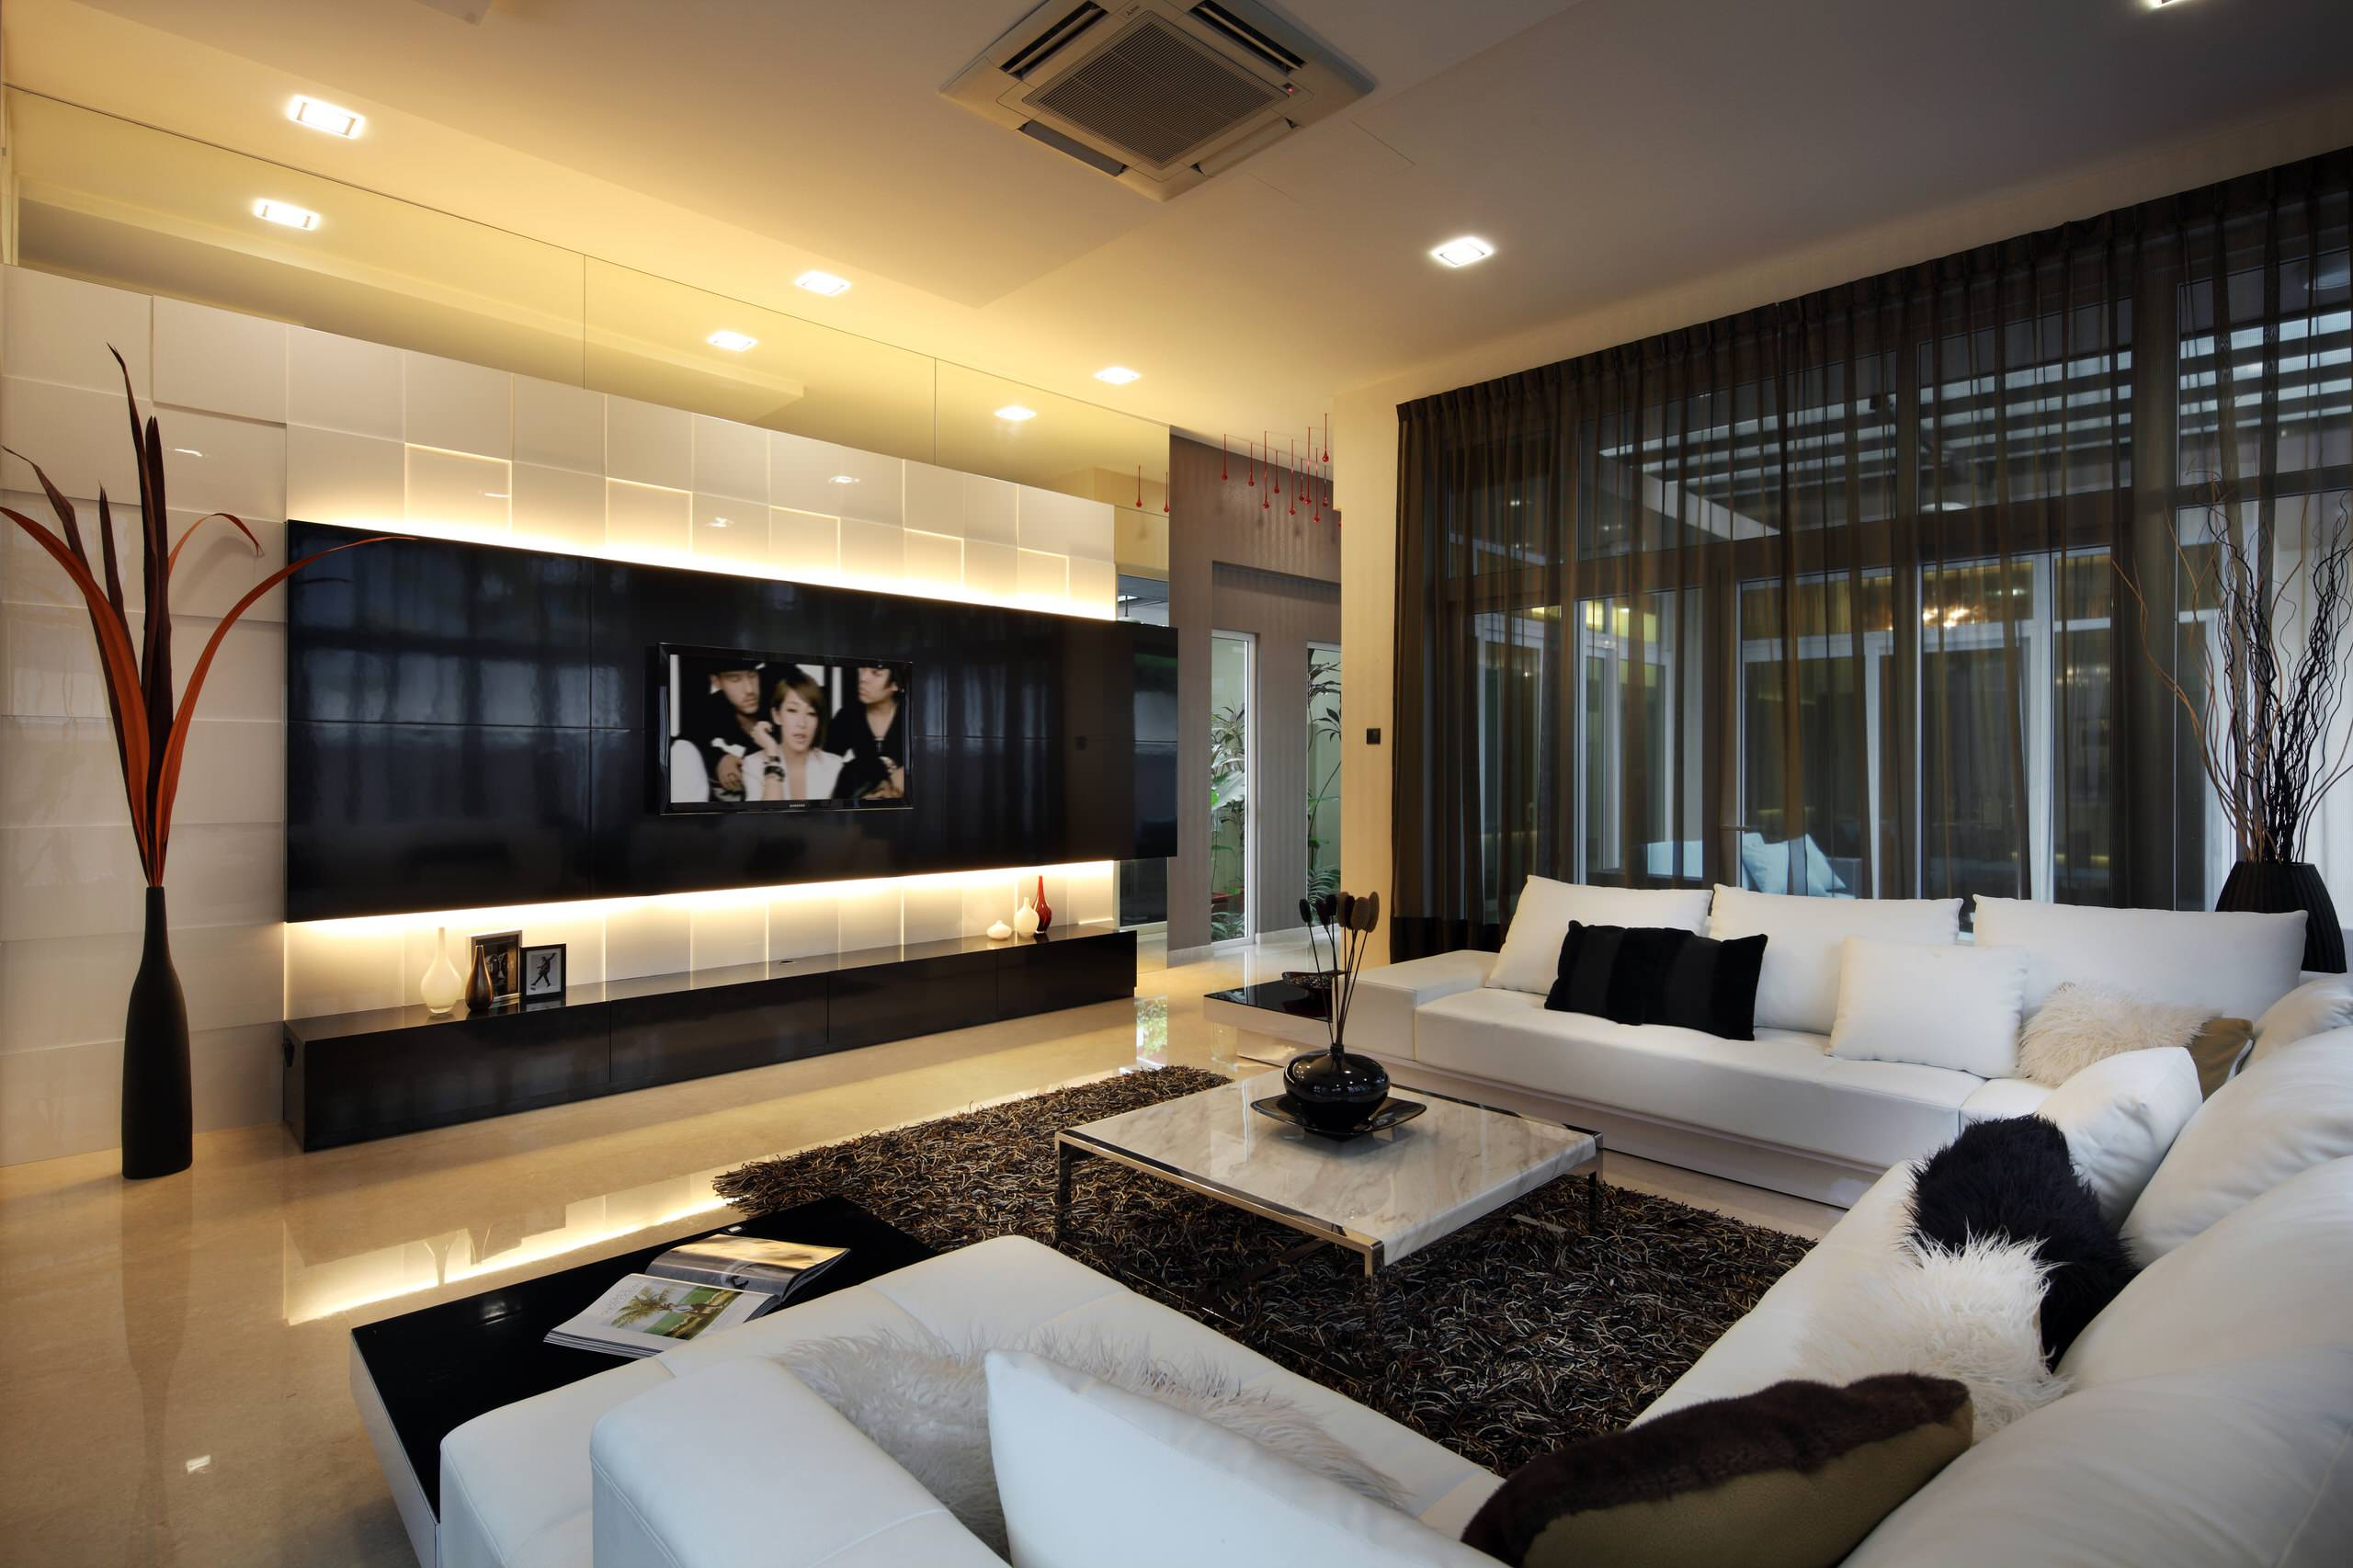 Incredible modern house interior of formal living room decorating ideas with elegant white u shaped sectional sofa and square coffee t how to decorate